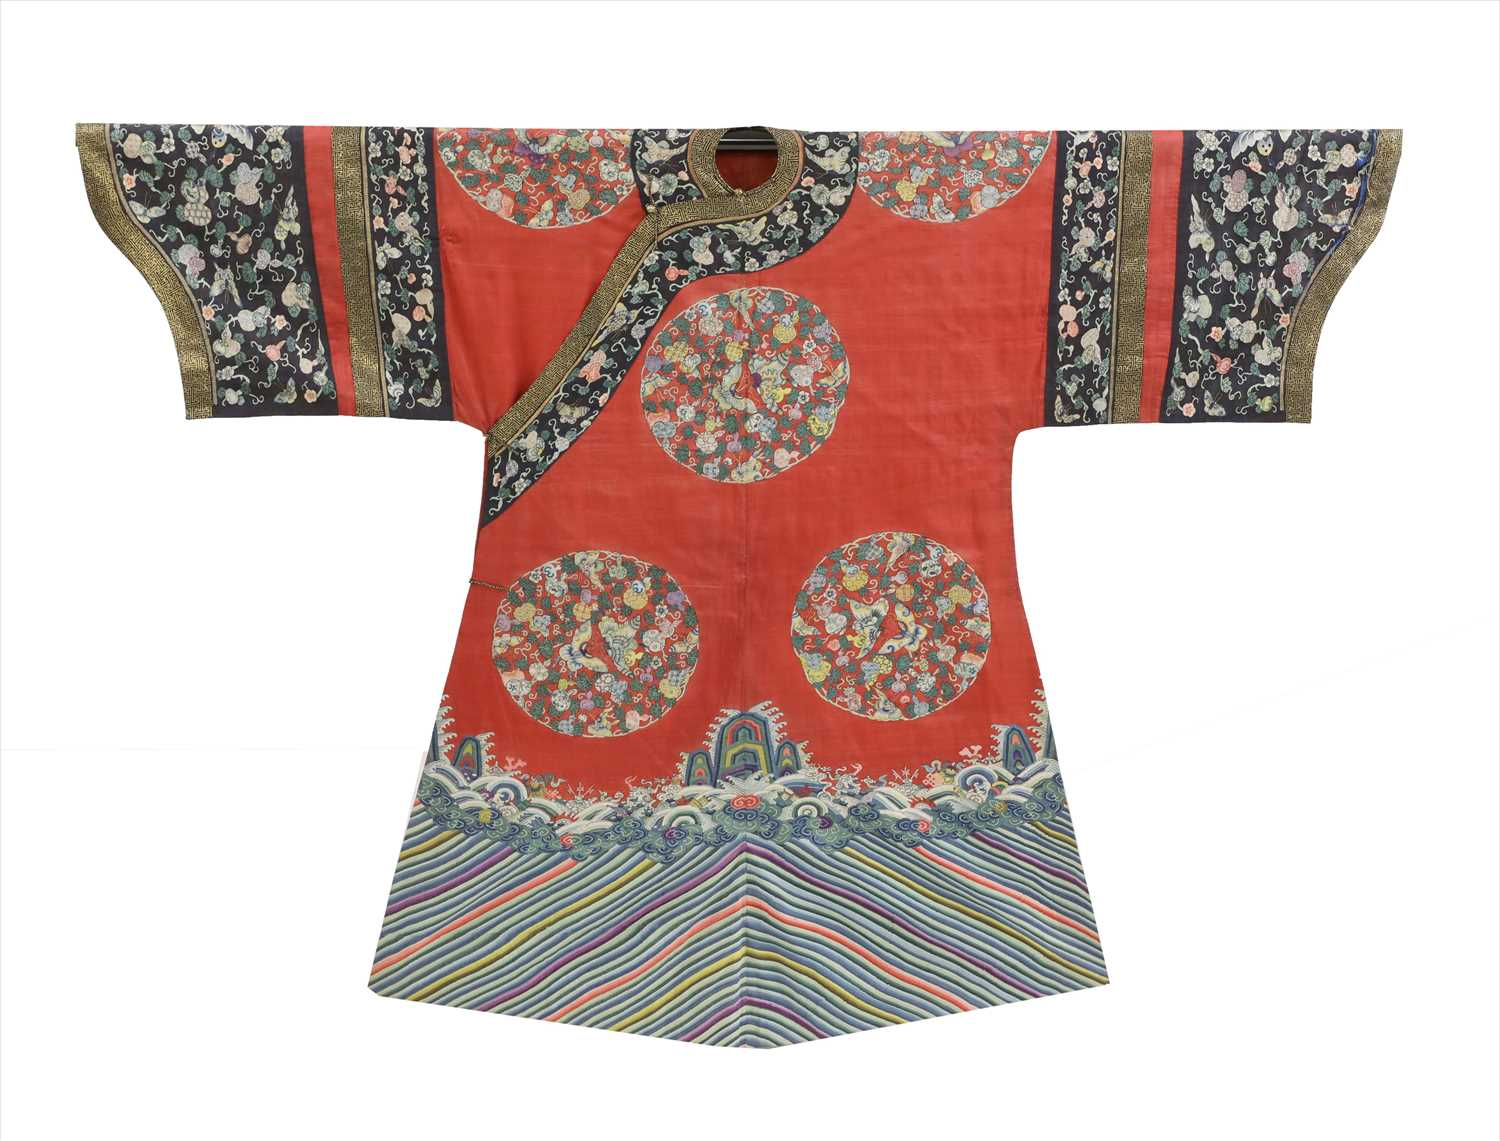 Lot 100-A Chinese embroidered kesi red robe